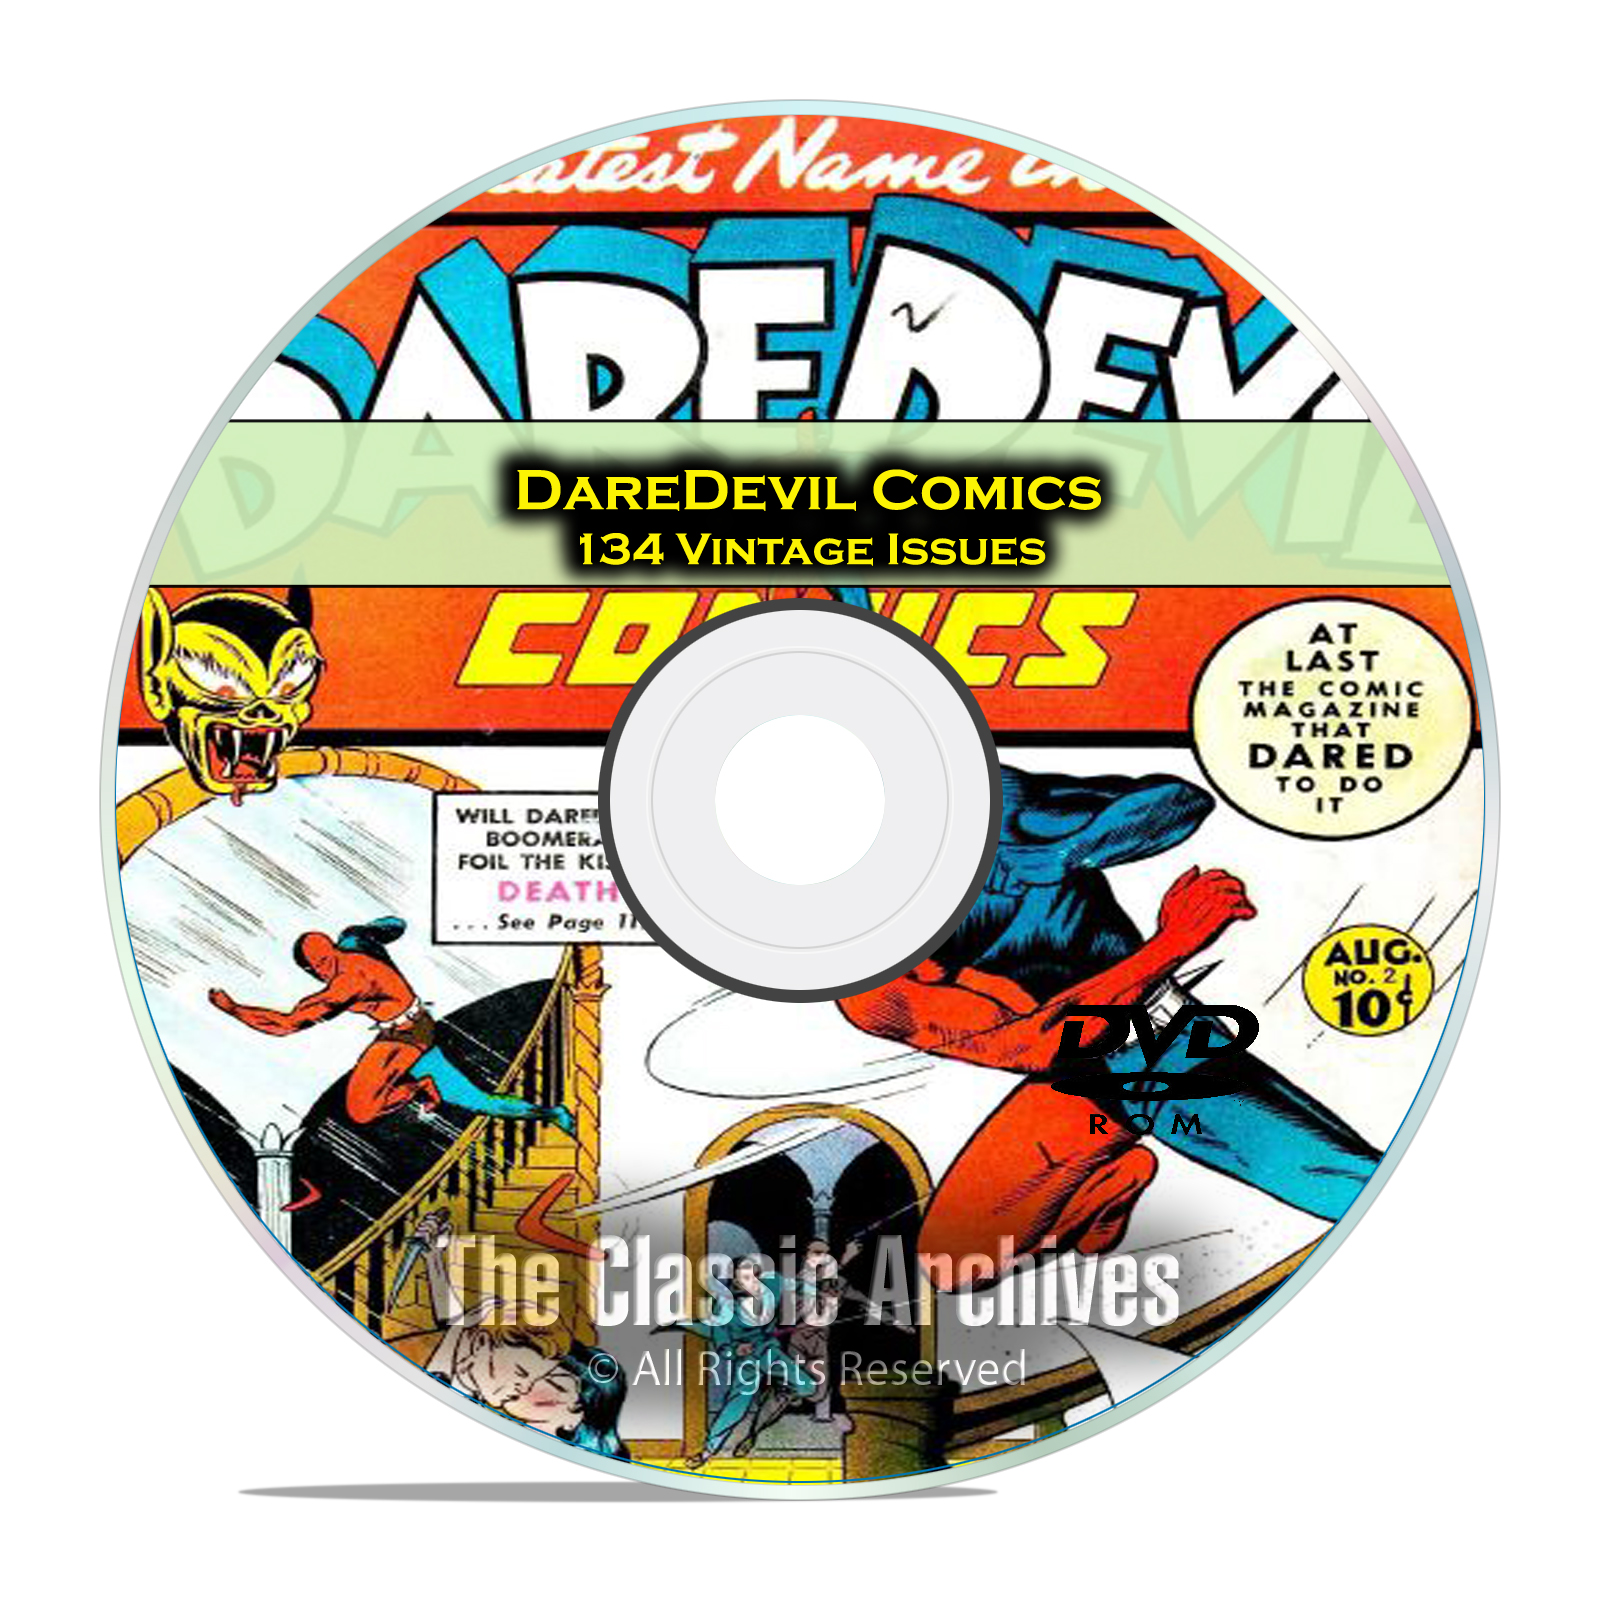 DareDevil Comics, 134 Back Issues, Full Color, PDF, Golden Age Comics DVD